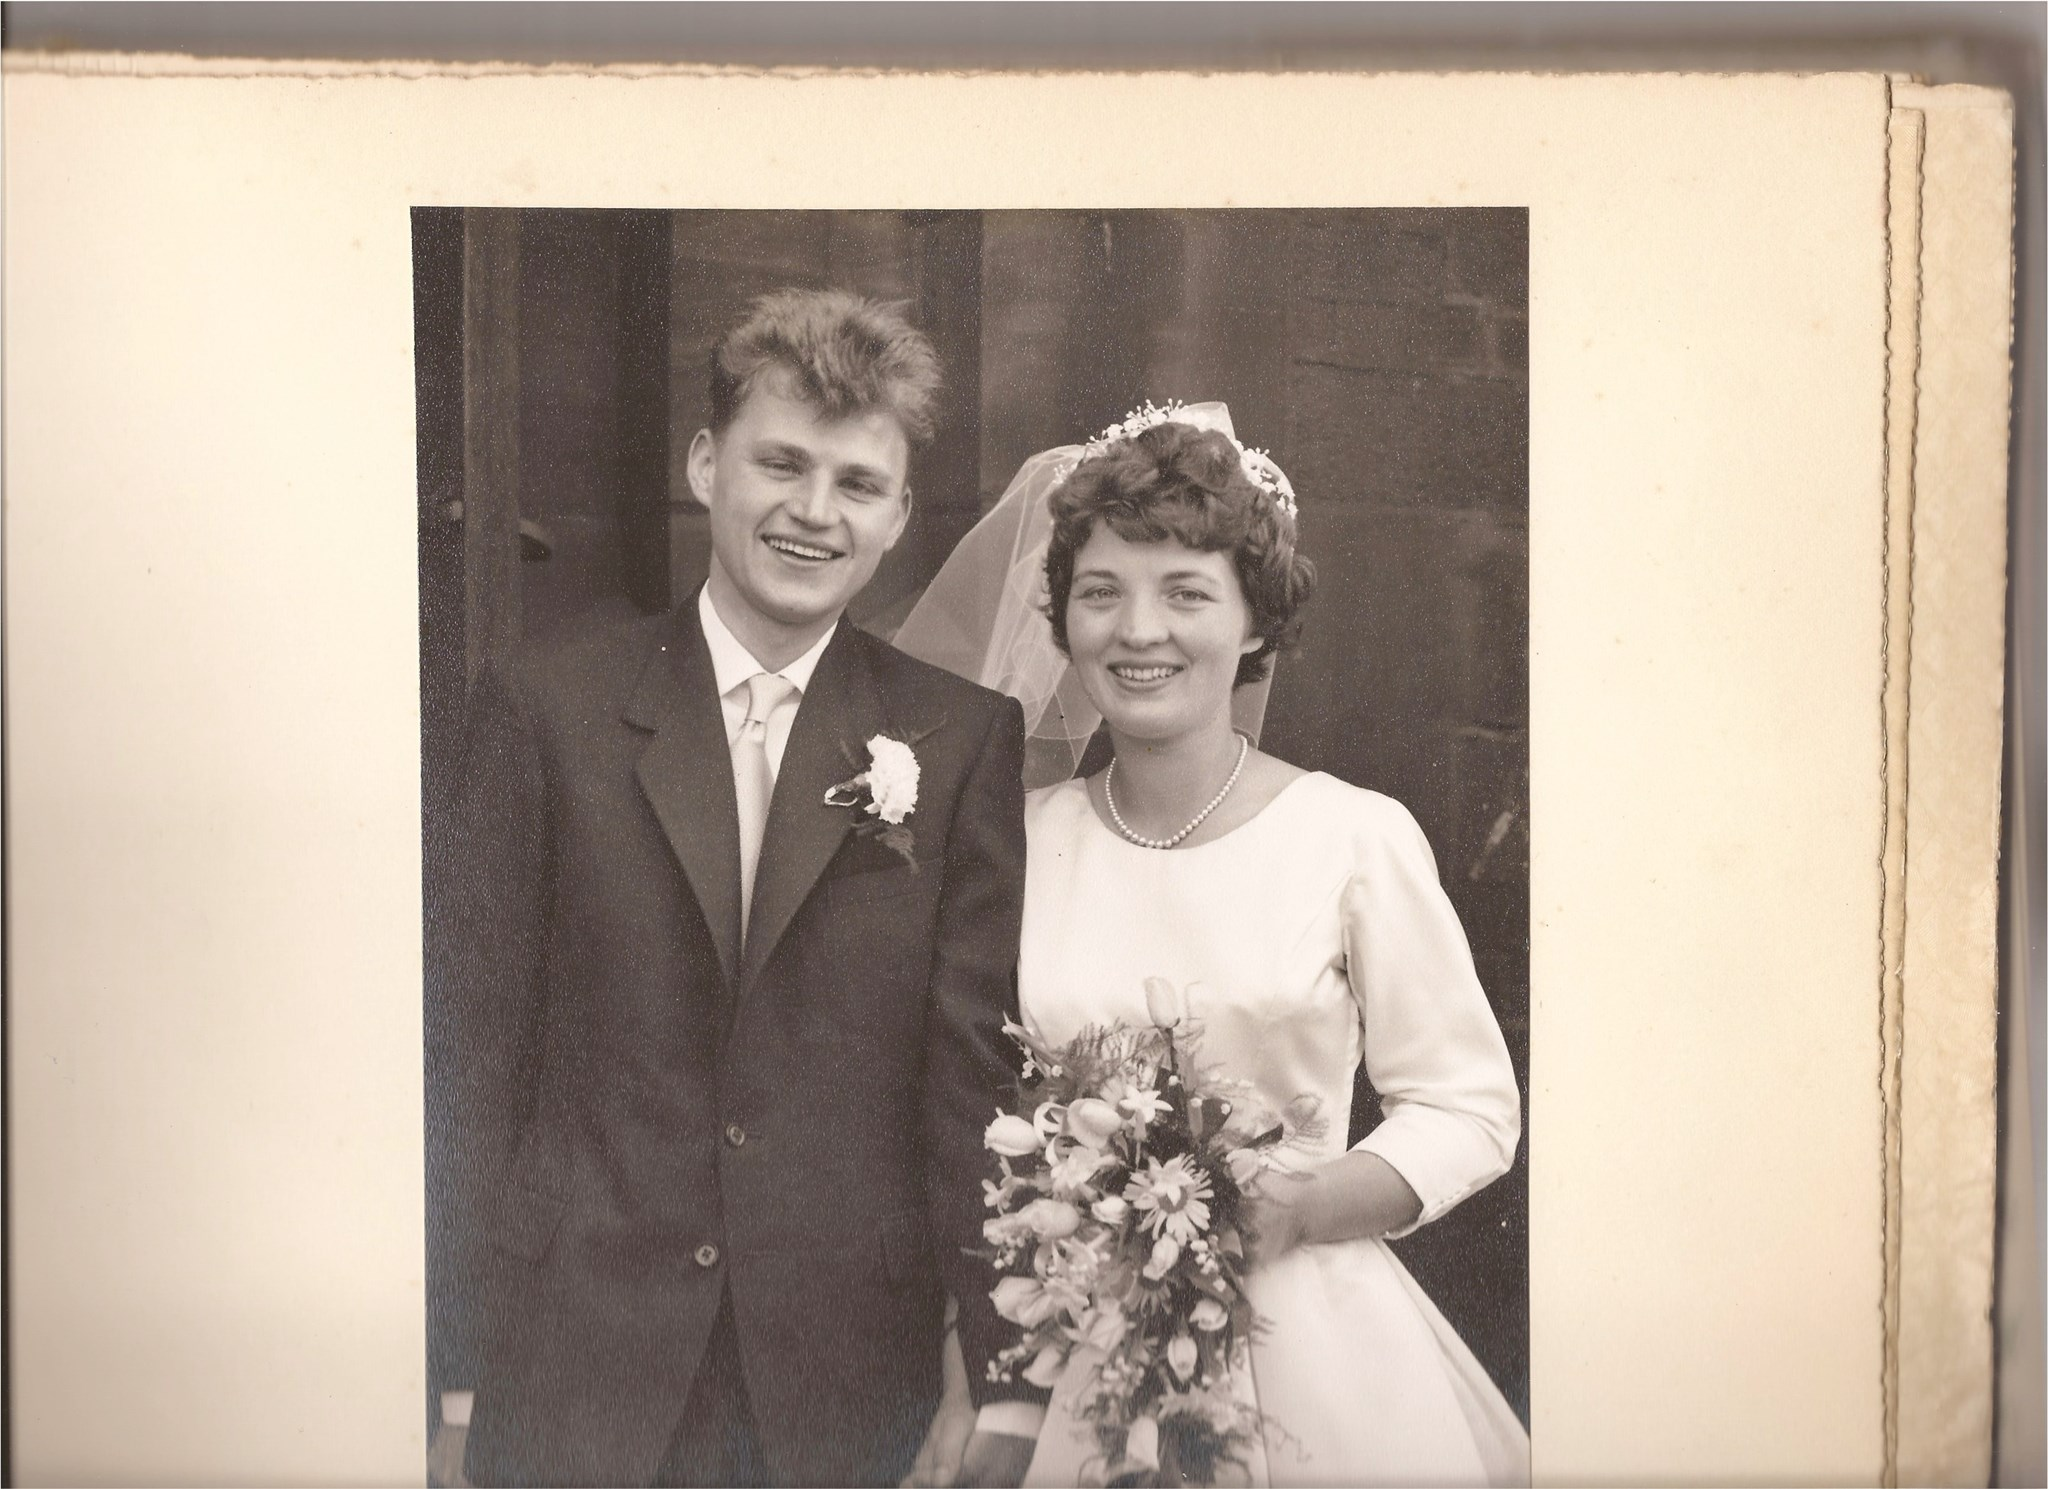 The Wedding Day, 20th June 1959 (I think!)